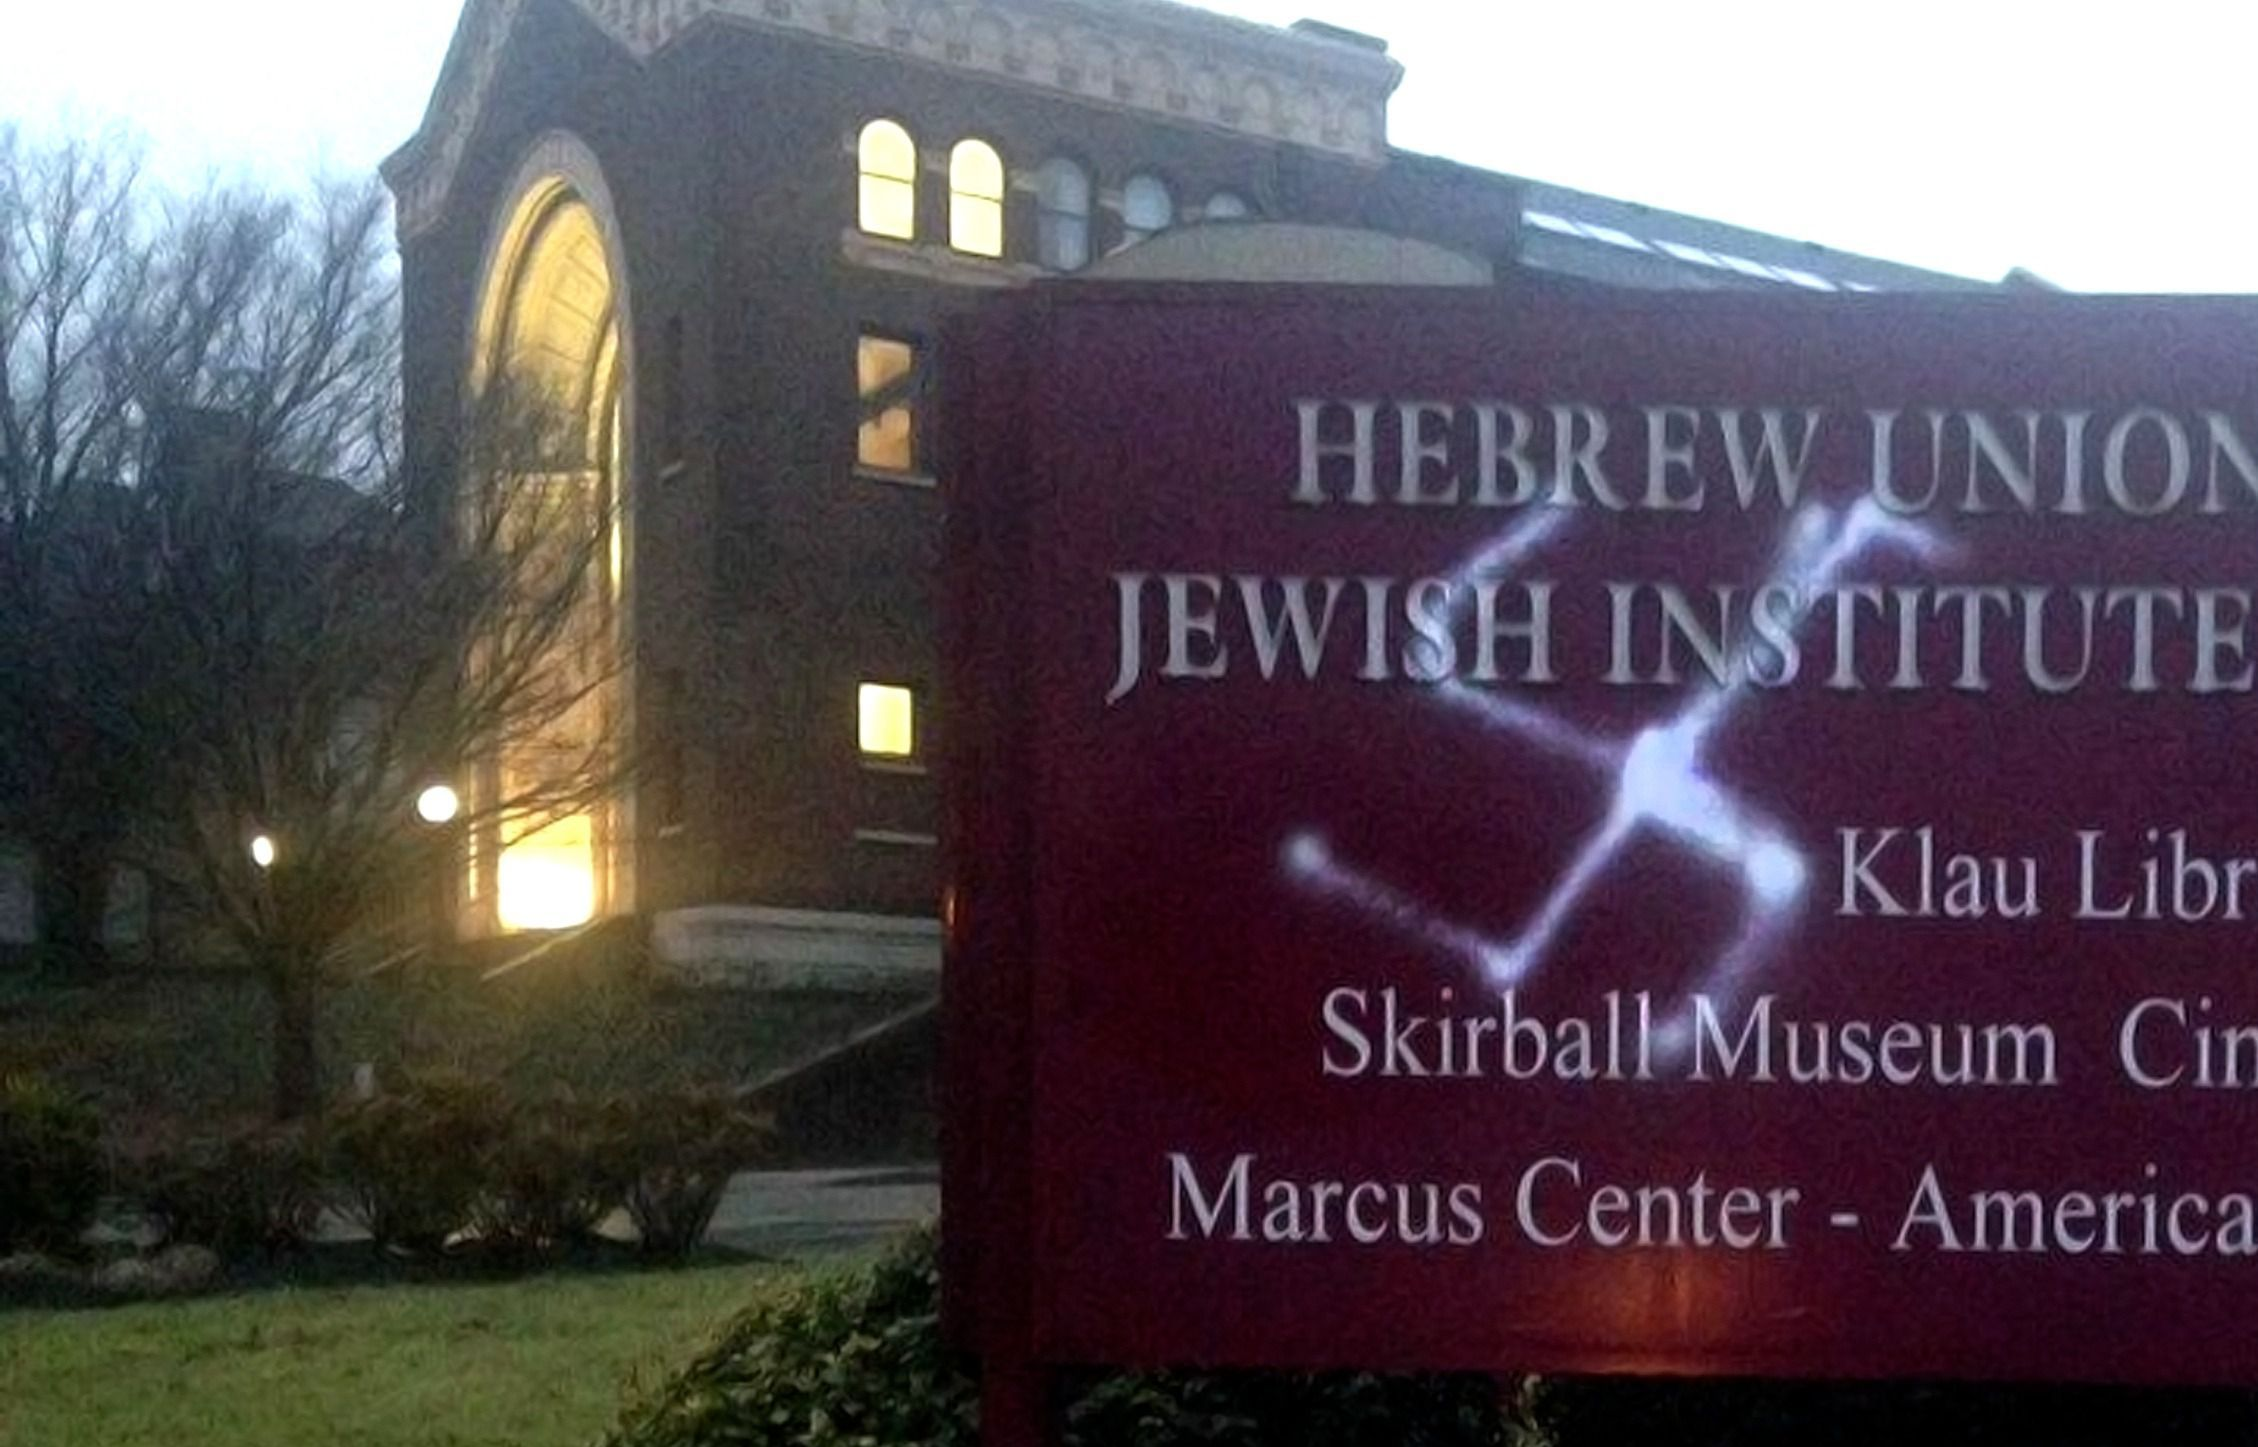 Hebrew Union College in Cincinnati Hit With Swastika Graffiti